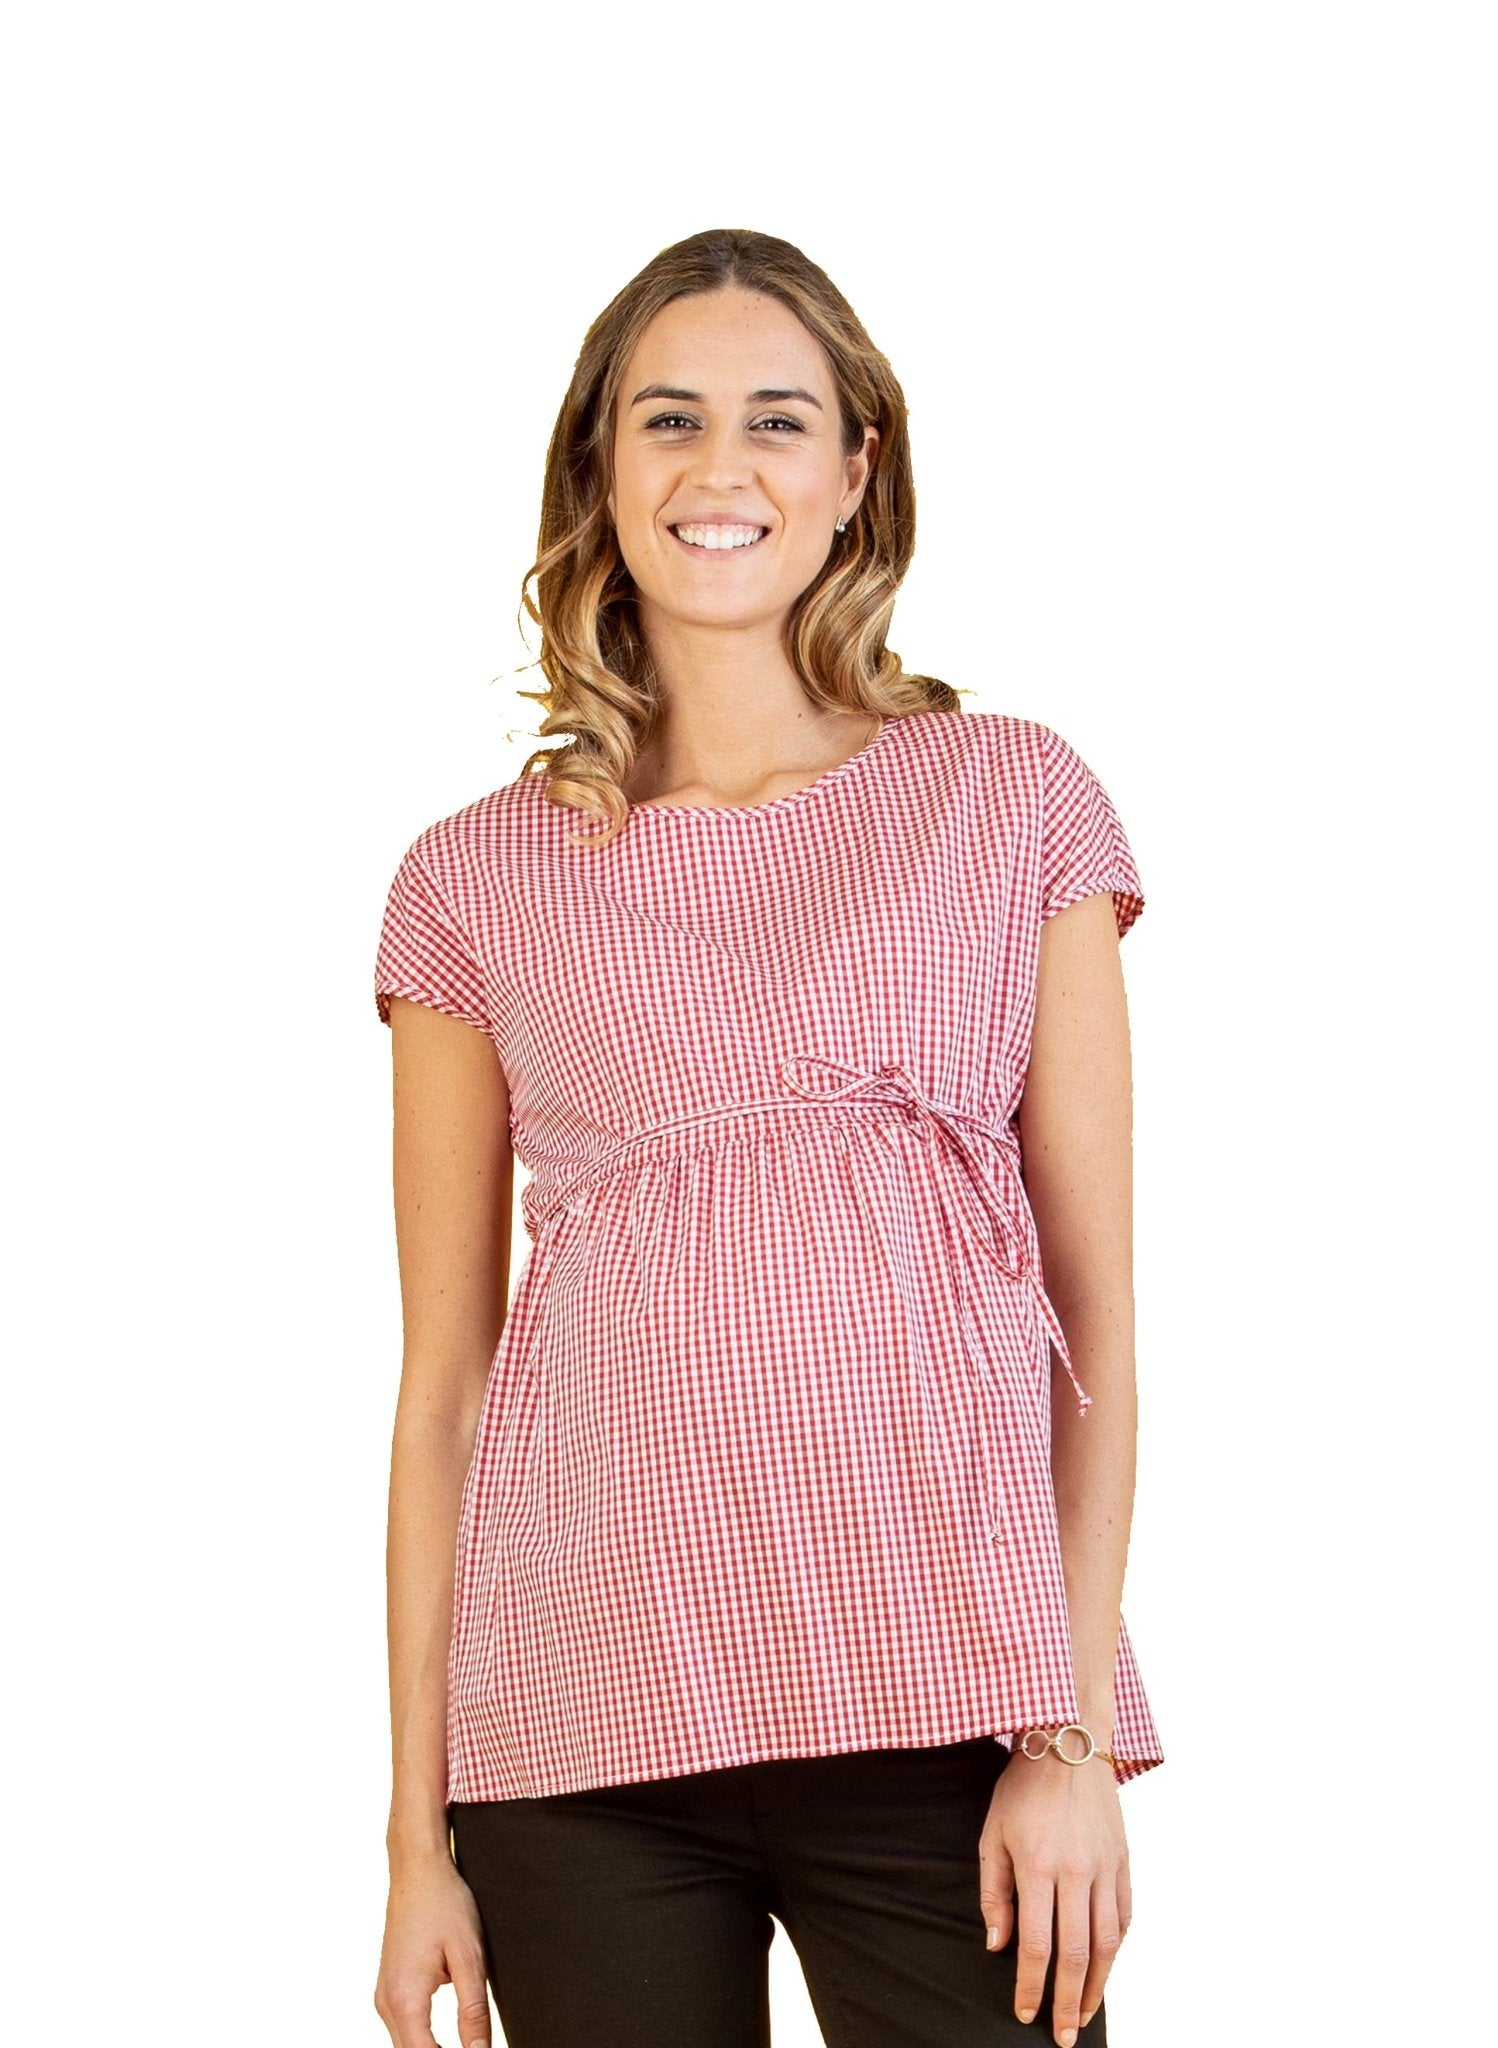 Cotton Maternity Top with Side String - Red - Mums and Bumps